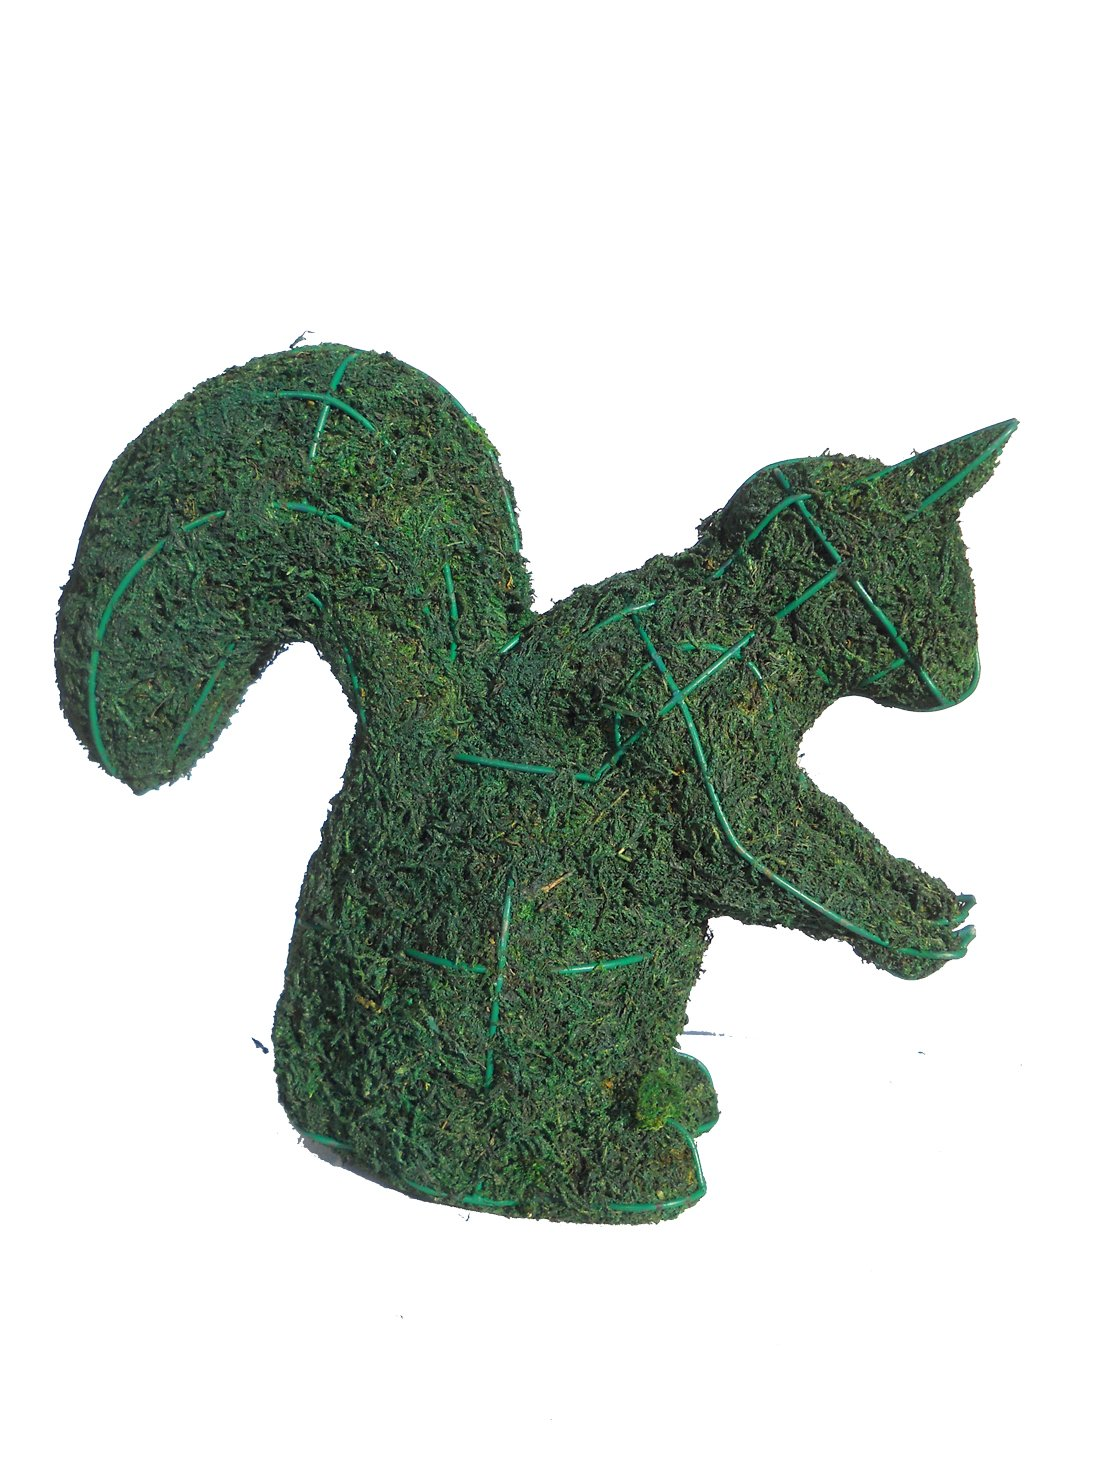 Squirrel 8 Inches High Moss Topiary Frame, Handmade Animal Decoration